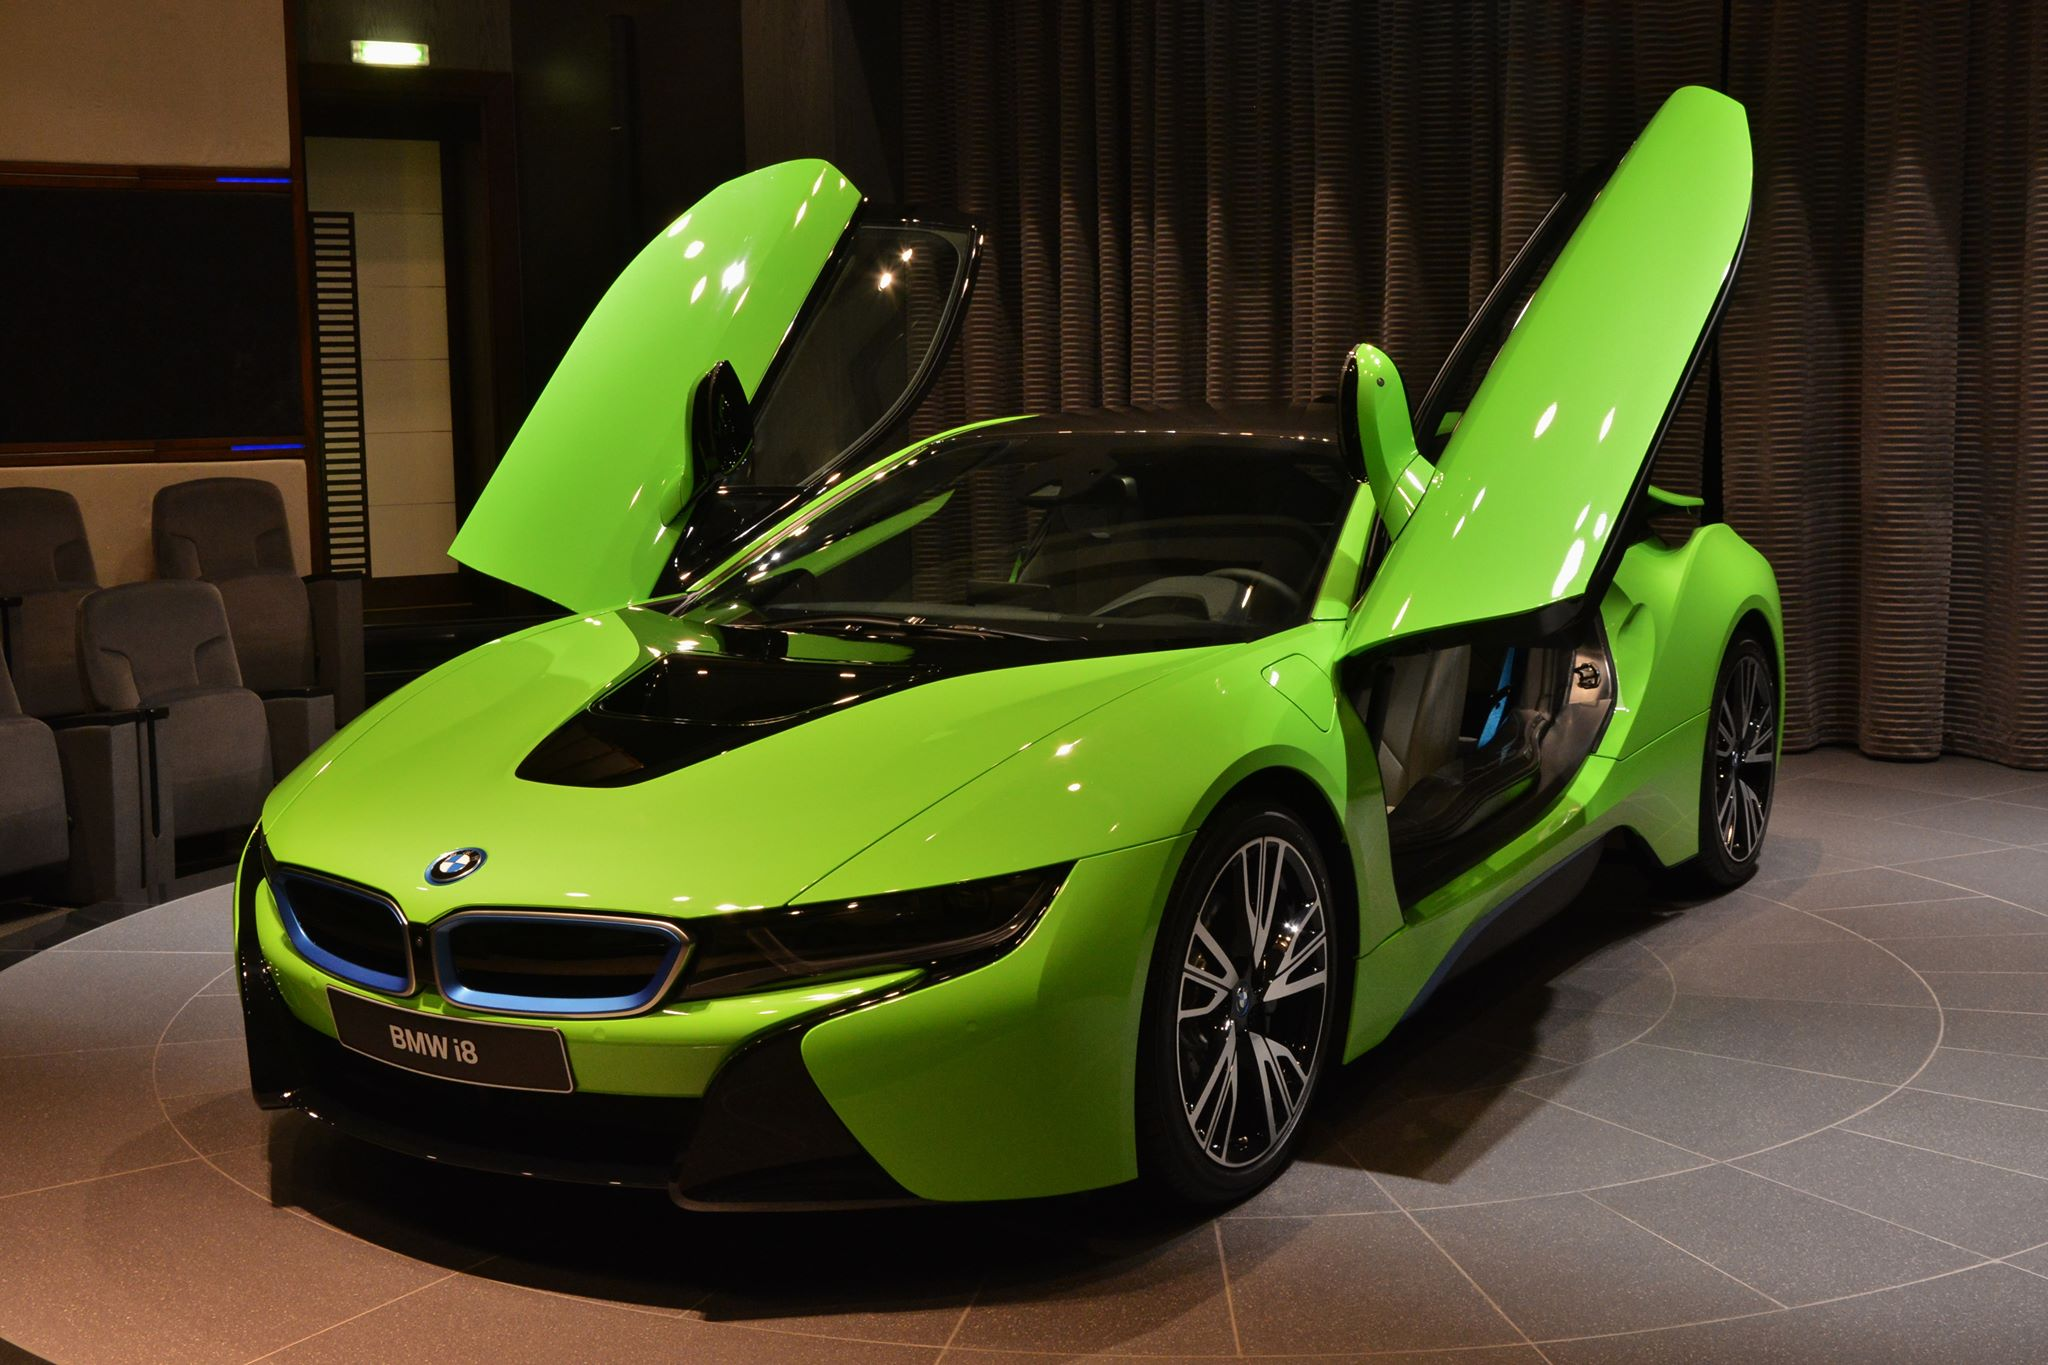 Bmw I8 Top Speed >> BMW i8 in Neon Green